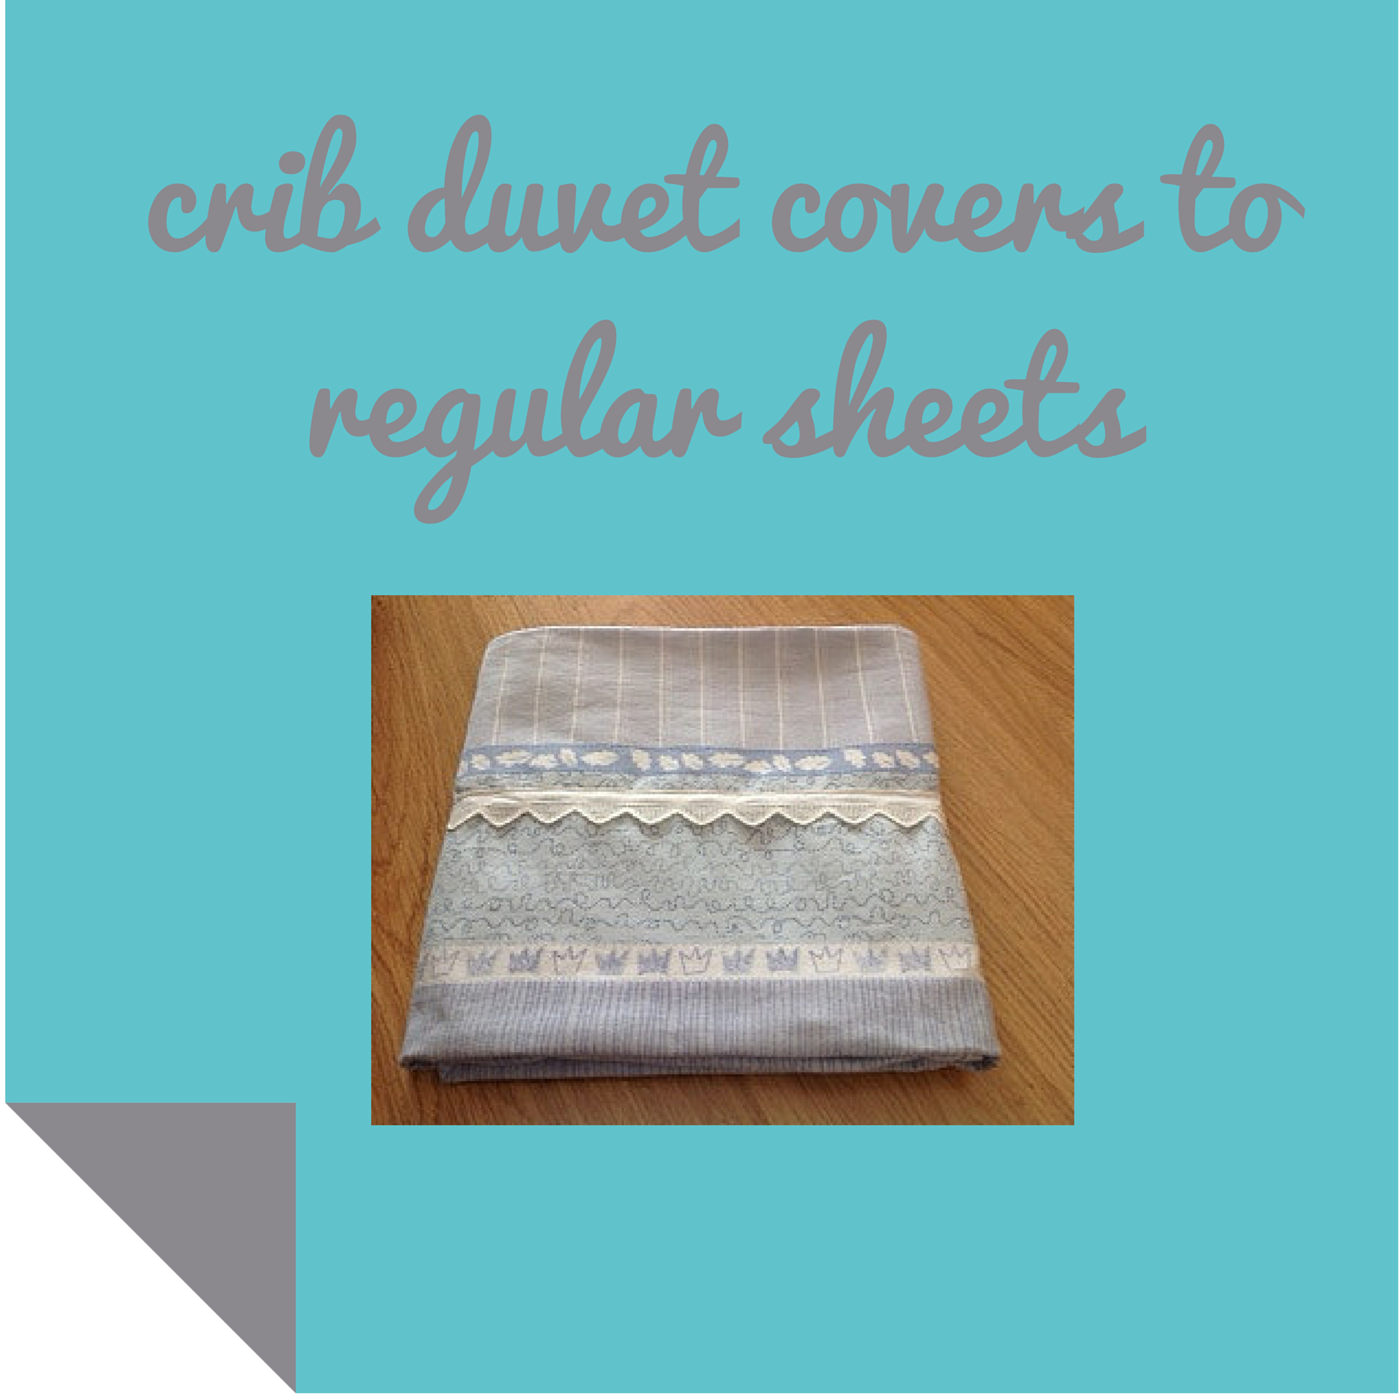 http://keepingitrreal.blogspot.com.es/2015/03/reuse-upcycle-duvet-covers-to-sheets.html